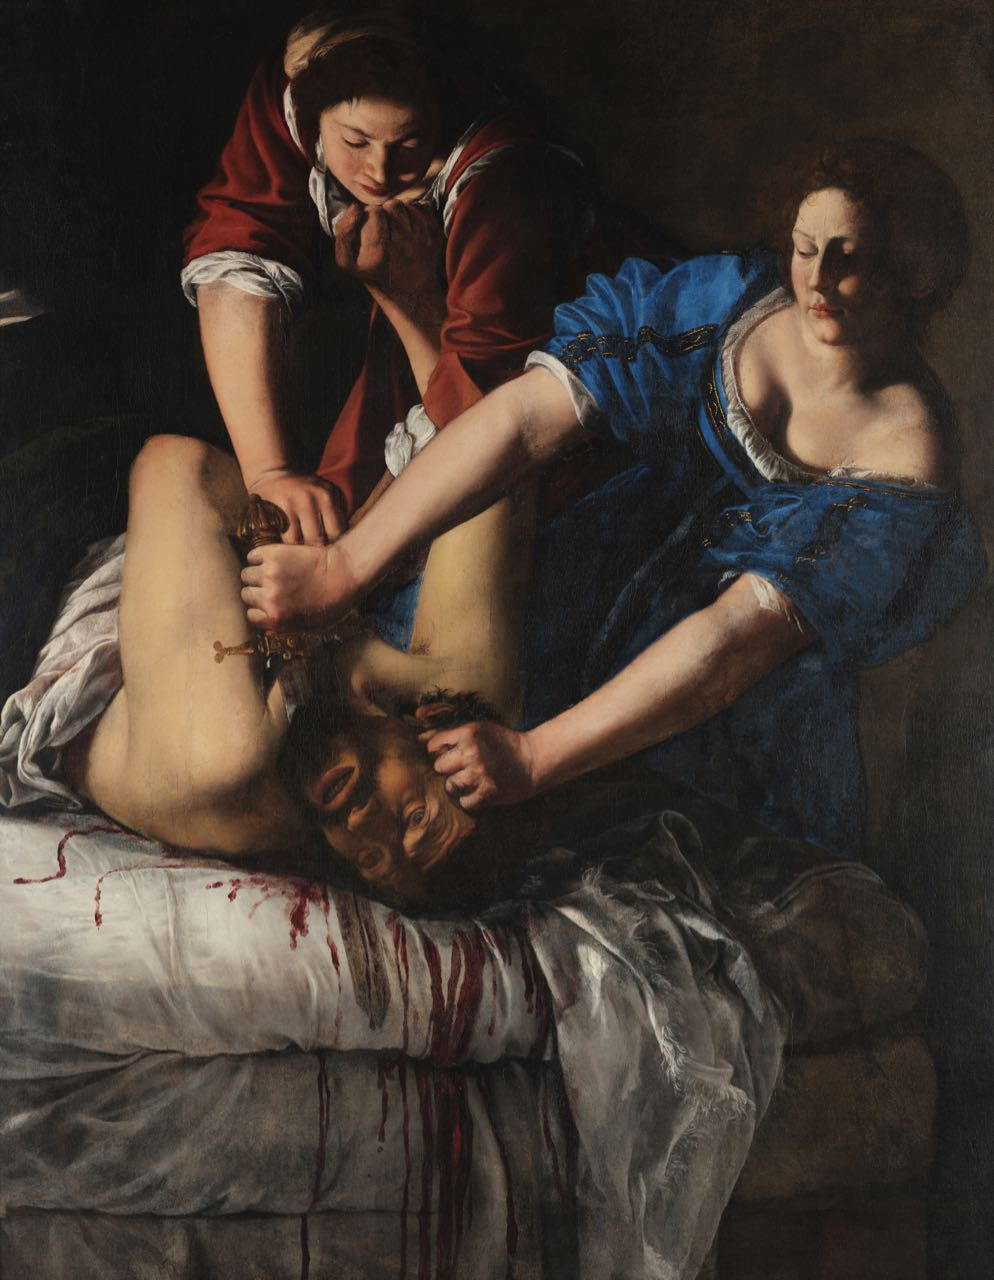 Artemisia Gentileschi,  Judith and Holofernes  (ca.1612-17), oil on canvas, 159 x 126 cm Museo e Real Bosco di Capodimonte, Naples